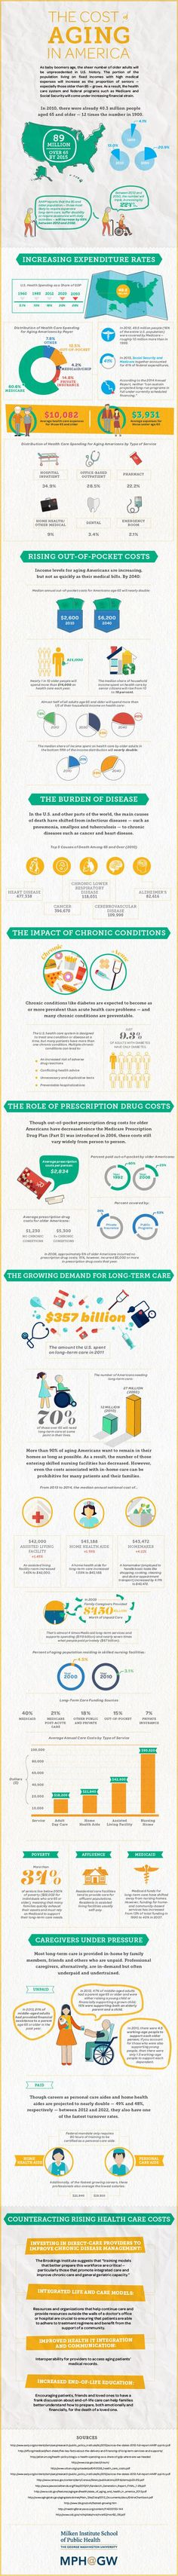 Boomers are aging & learning that there's a high cost of getting old: health care, long term care, home health care & more-infographic from MPH Infographic Tools, Infographics, Words Of Appreciation, Long Term Care, You Better Work, Word Of Advice, End Of Life, Elderly Care, Healthy Aging